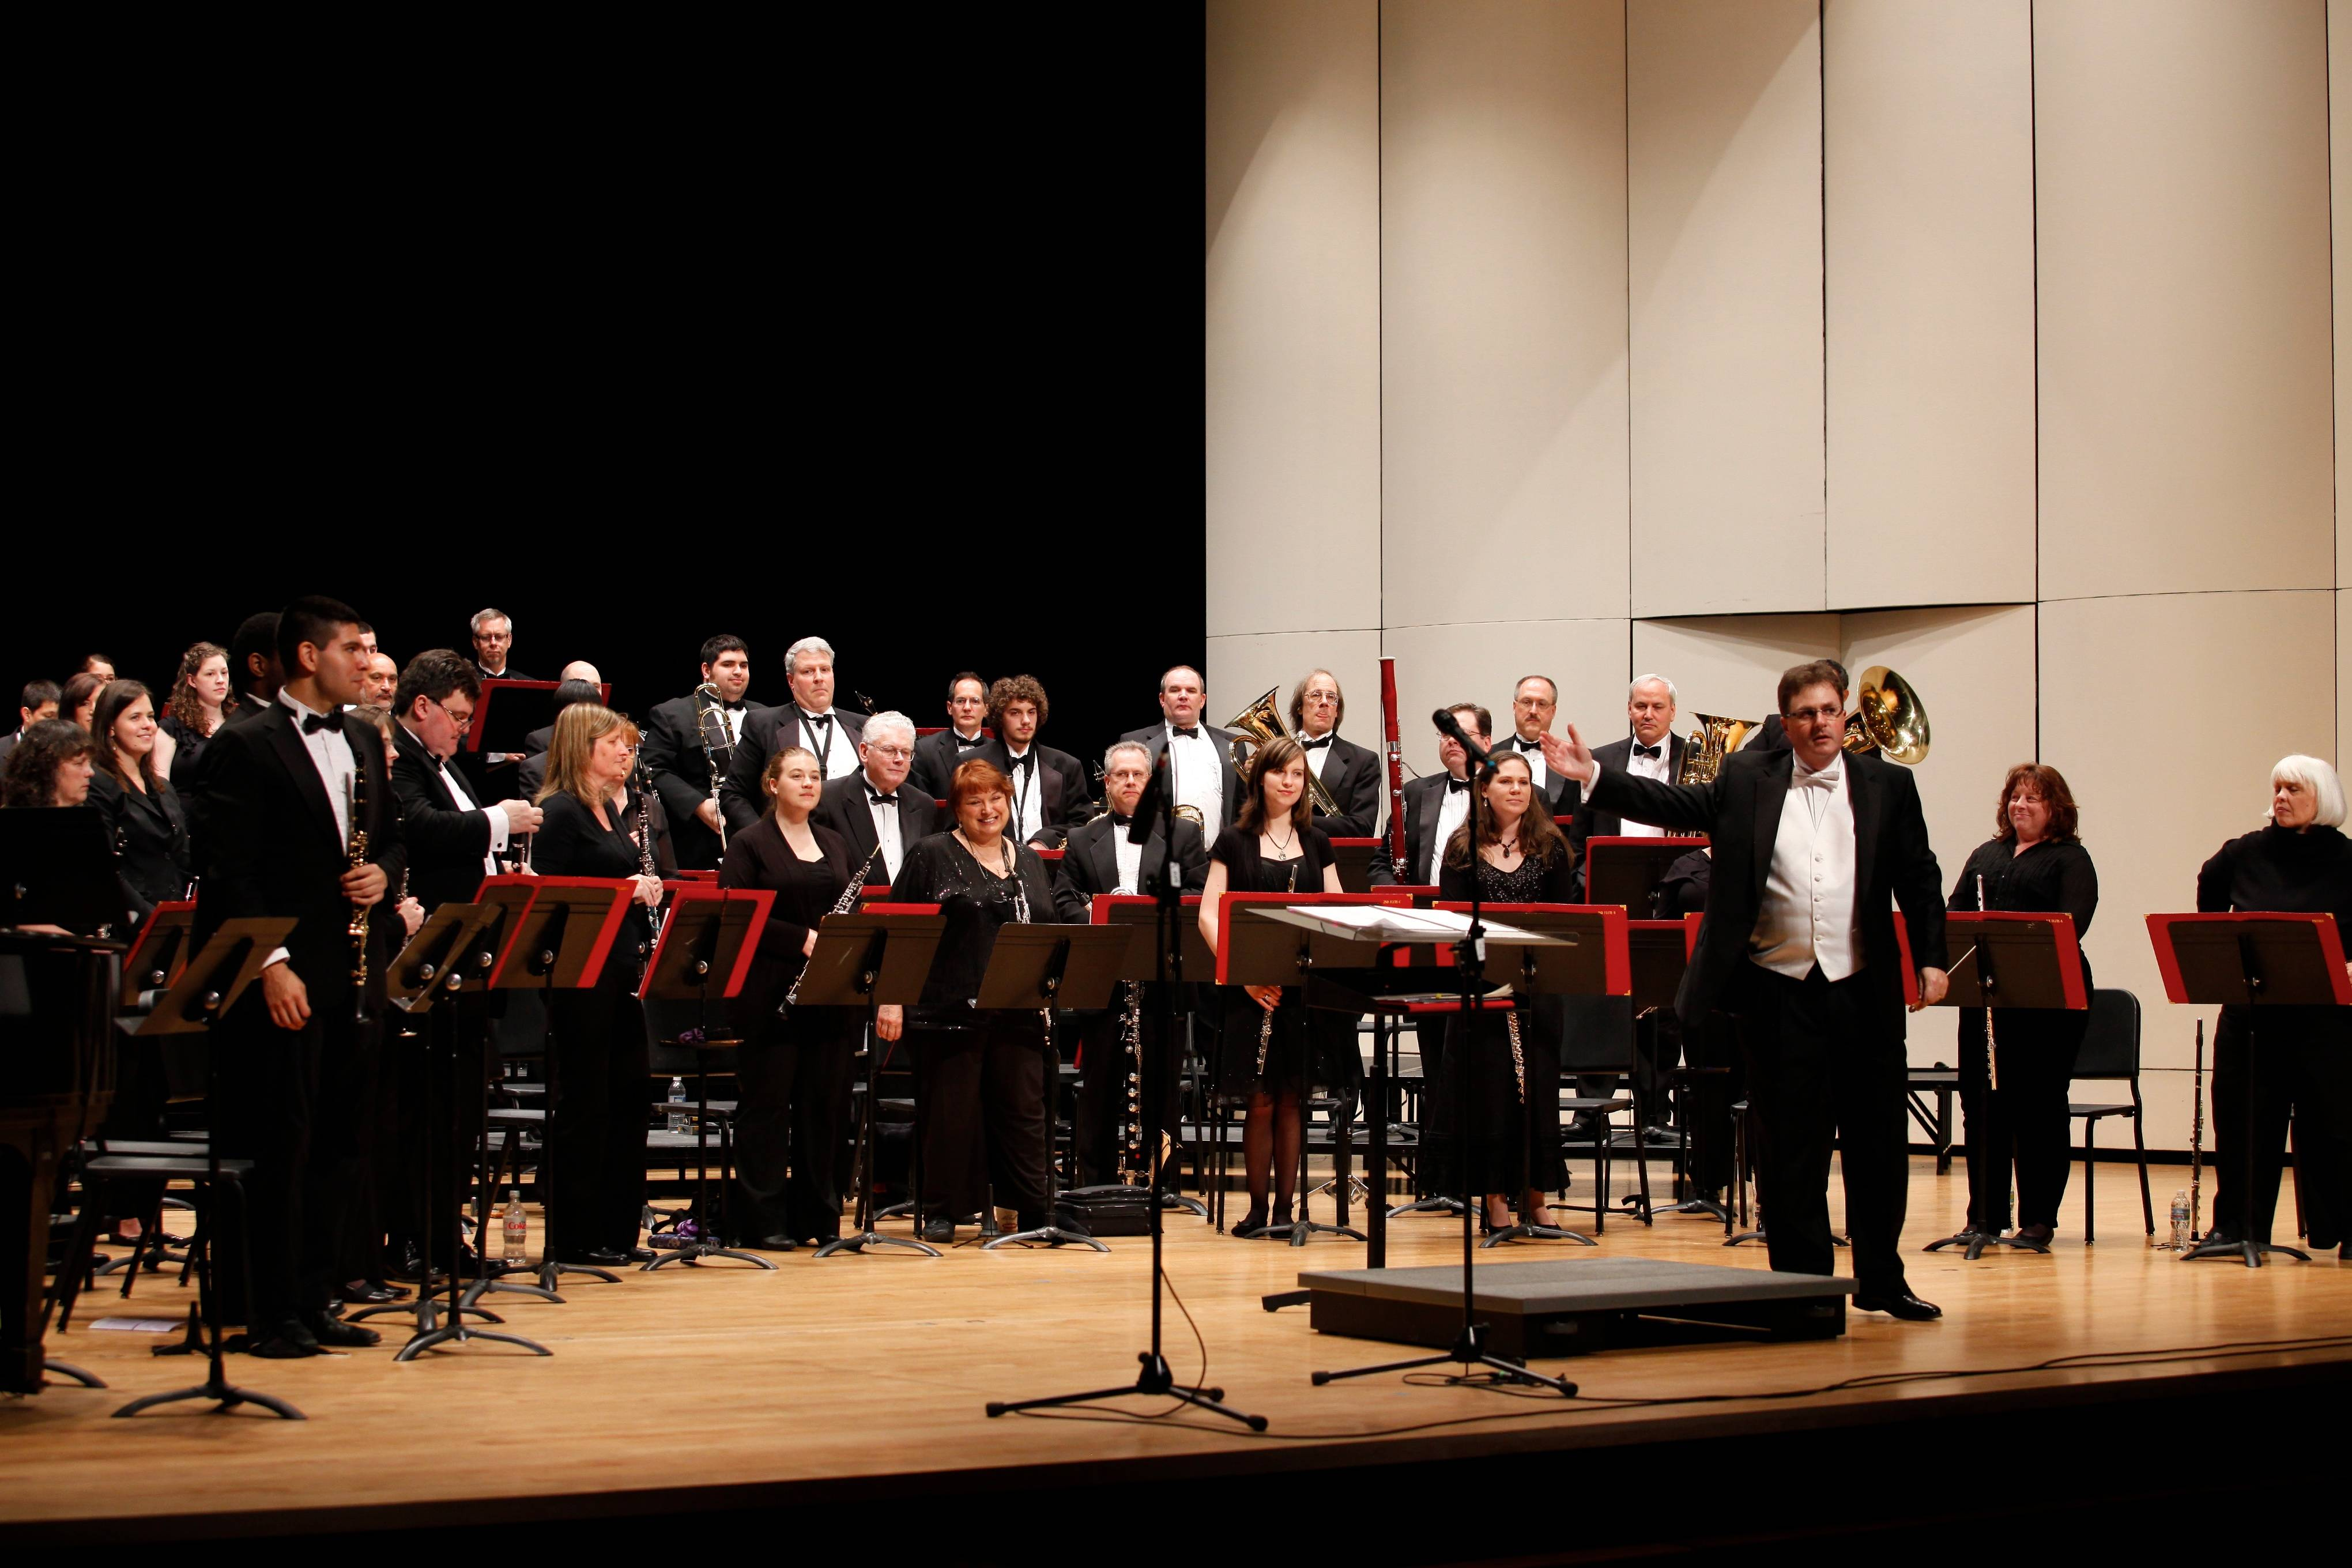 College of Lake County Wind Ensemble performing at the May 2013 Guest Artist Concert, conducted by Dr. Michael Flack.